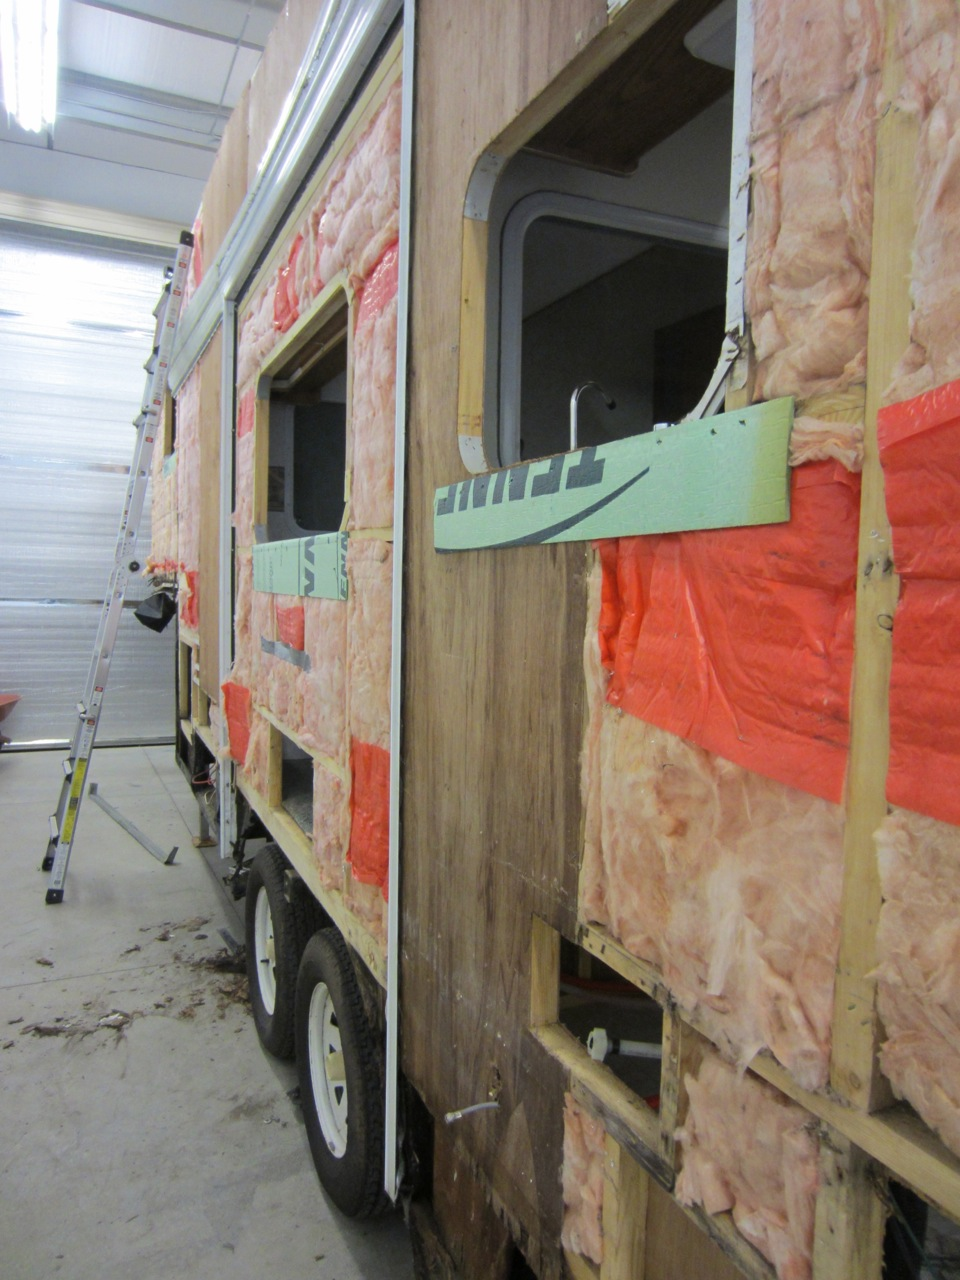 The original plan was the reuse the siding that we removed from the RV. But halfway through the teardown we realized that it would be hard to reuse it. The pieces of siding were deformed when removed and they weren't in the greatest condition to start with.